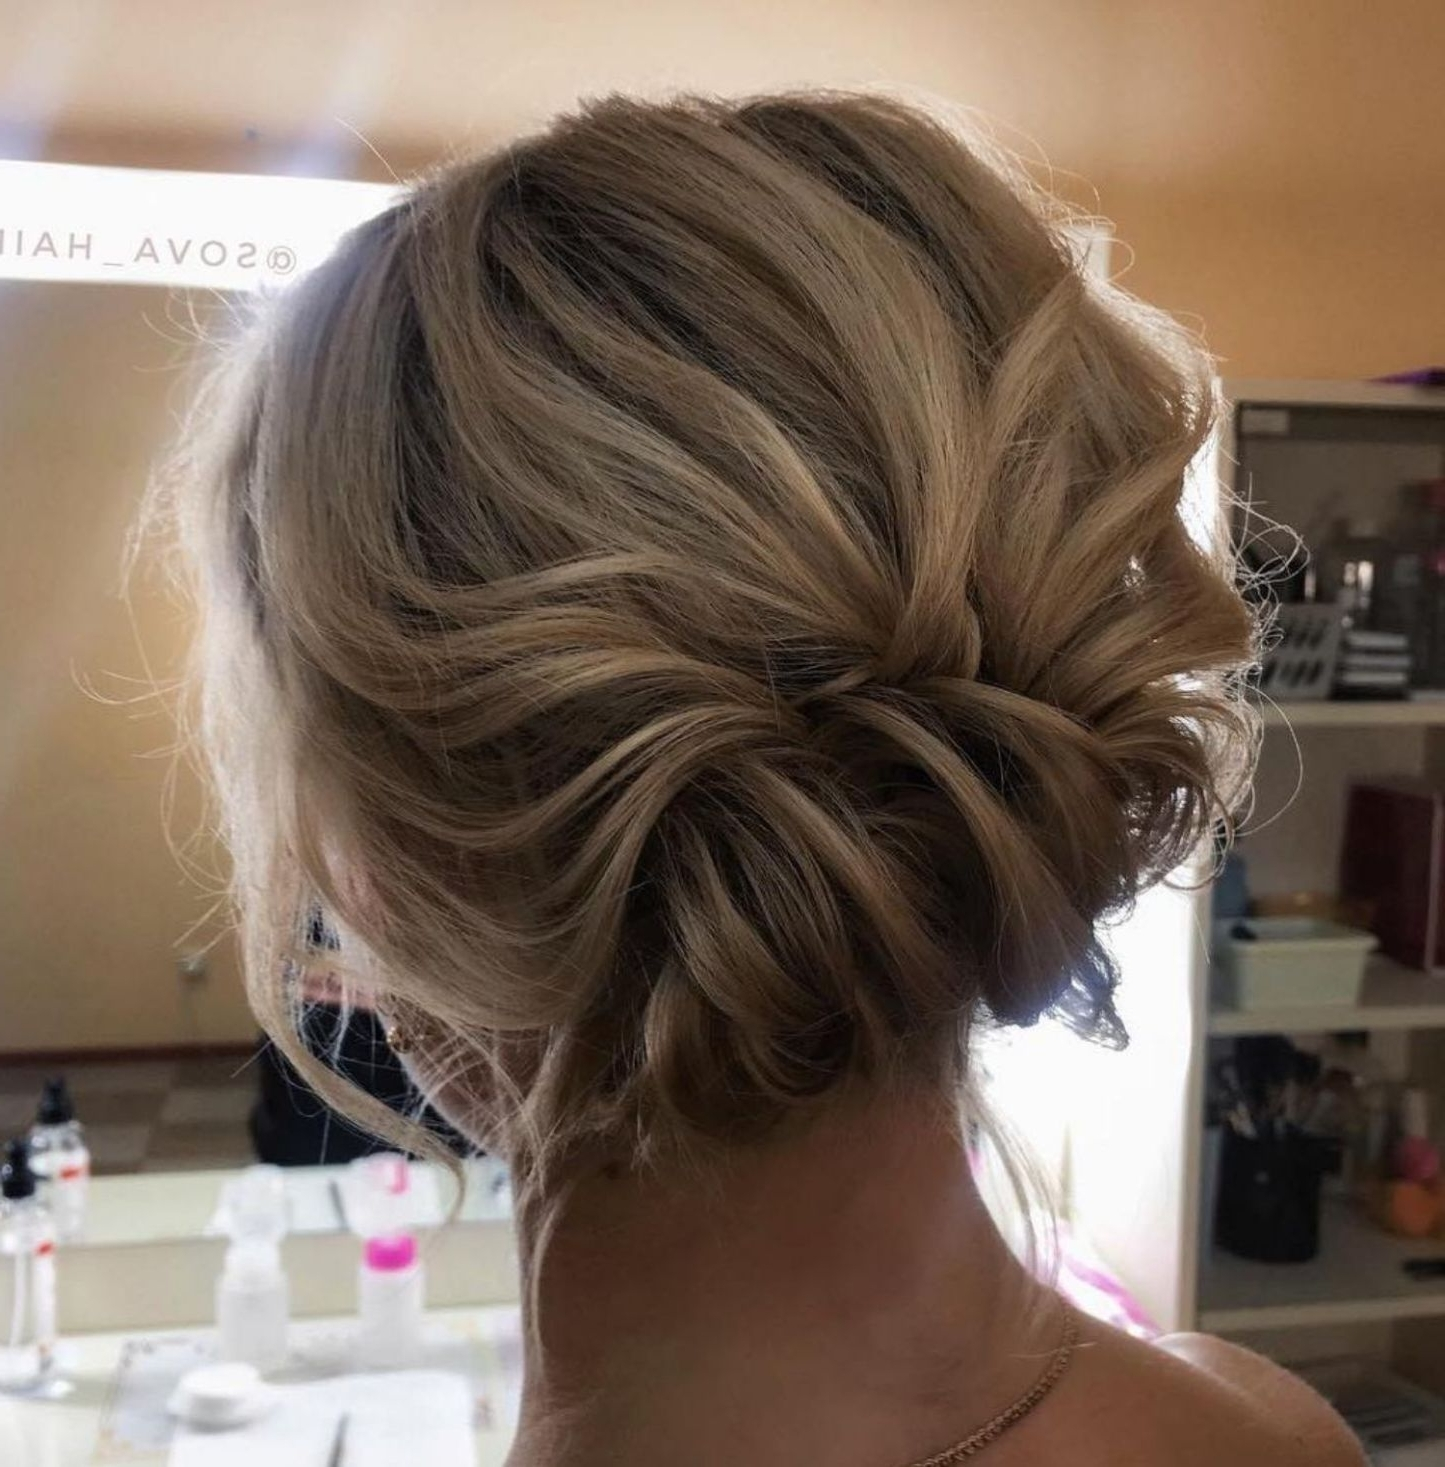 Messy Updo For Medium Fine Hair | Updos For Medium Length 10+ Amazing Wedding Hairstyles For Fine Hair Medium Length